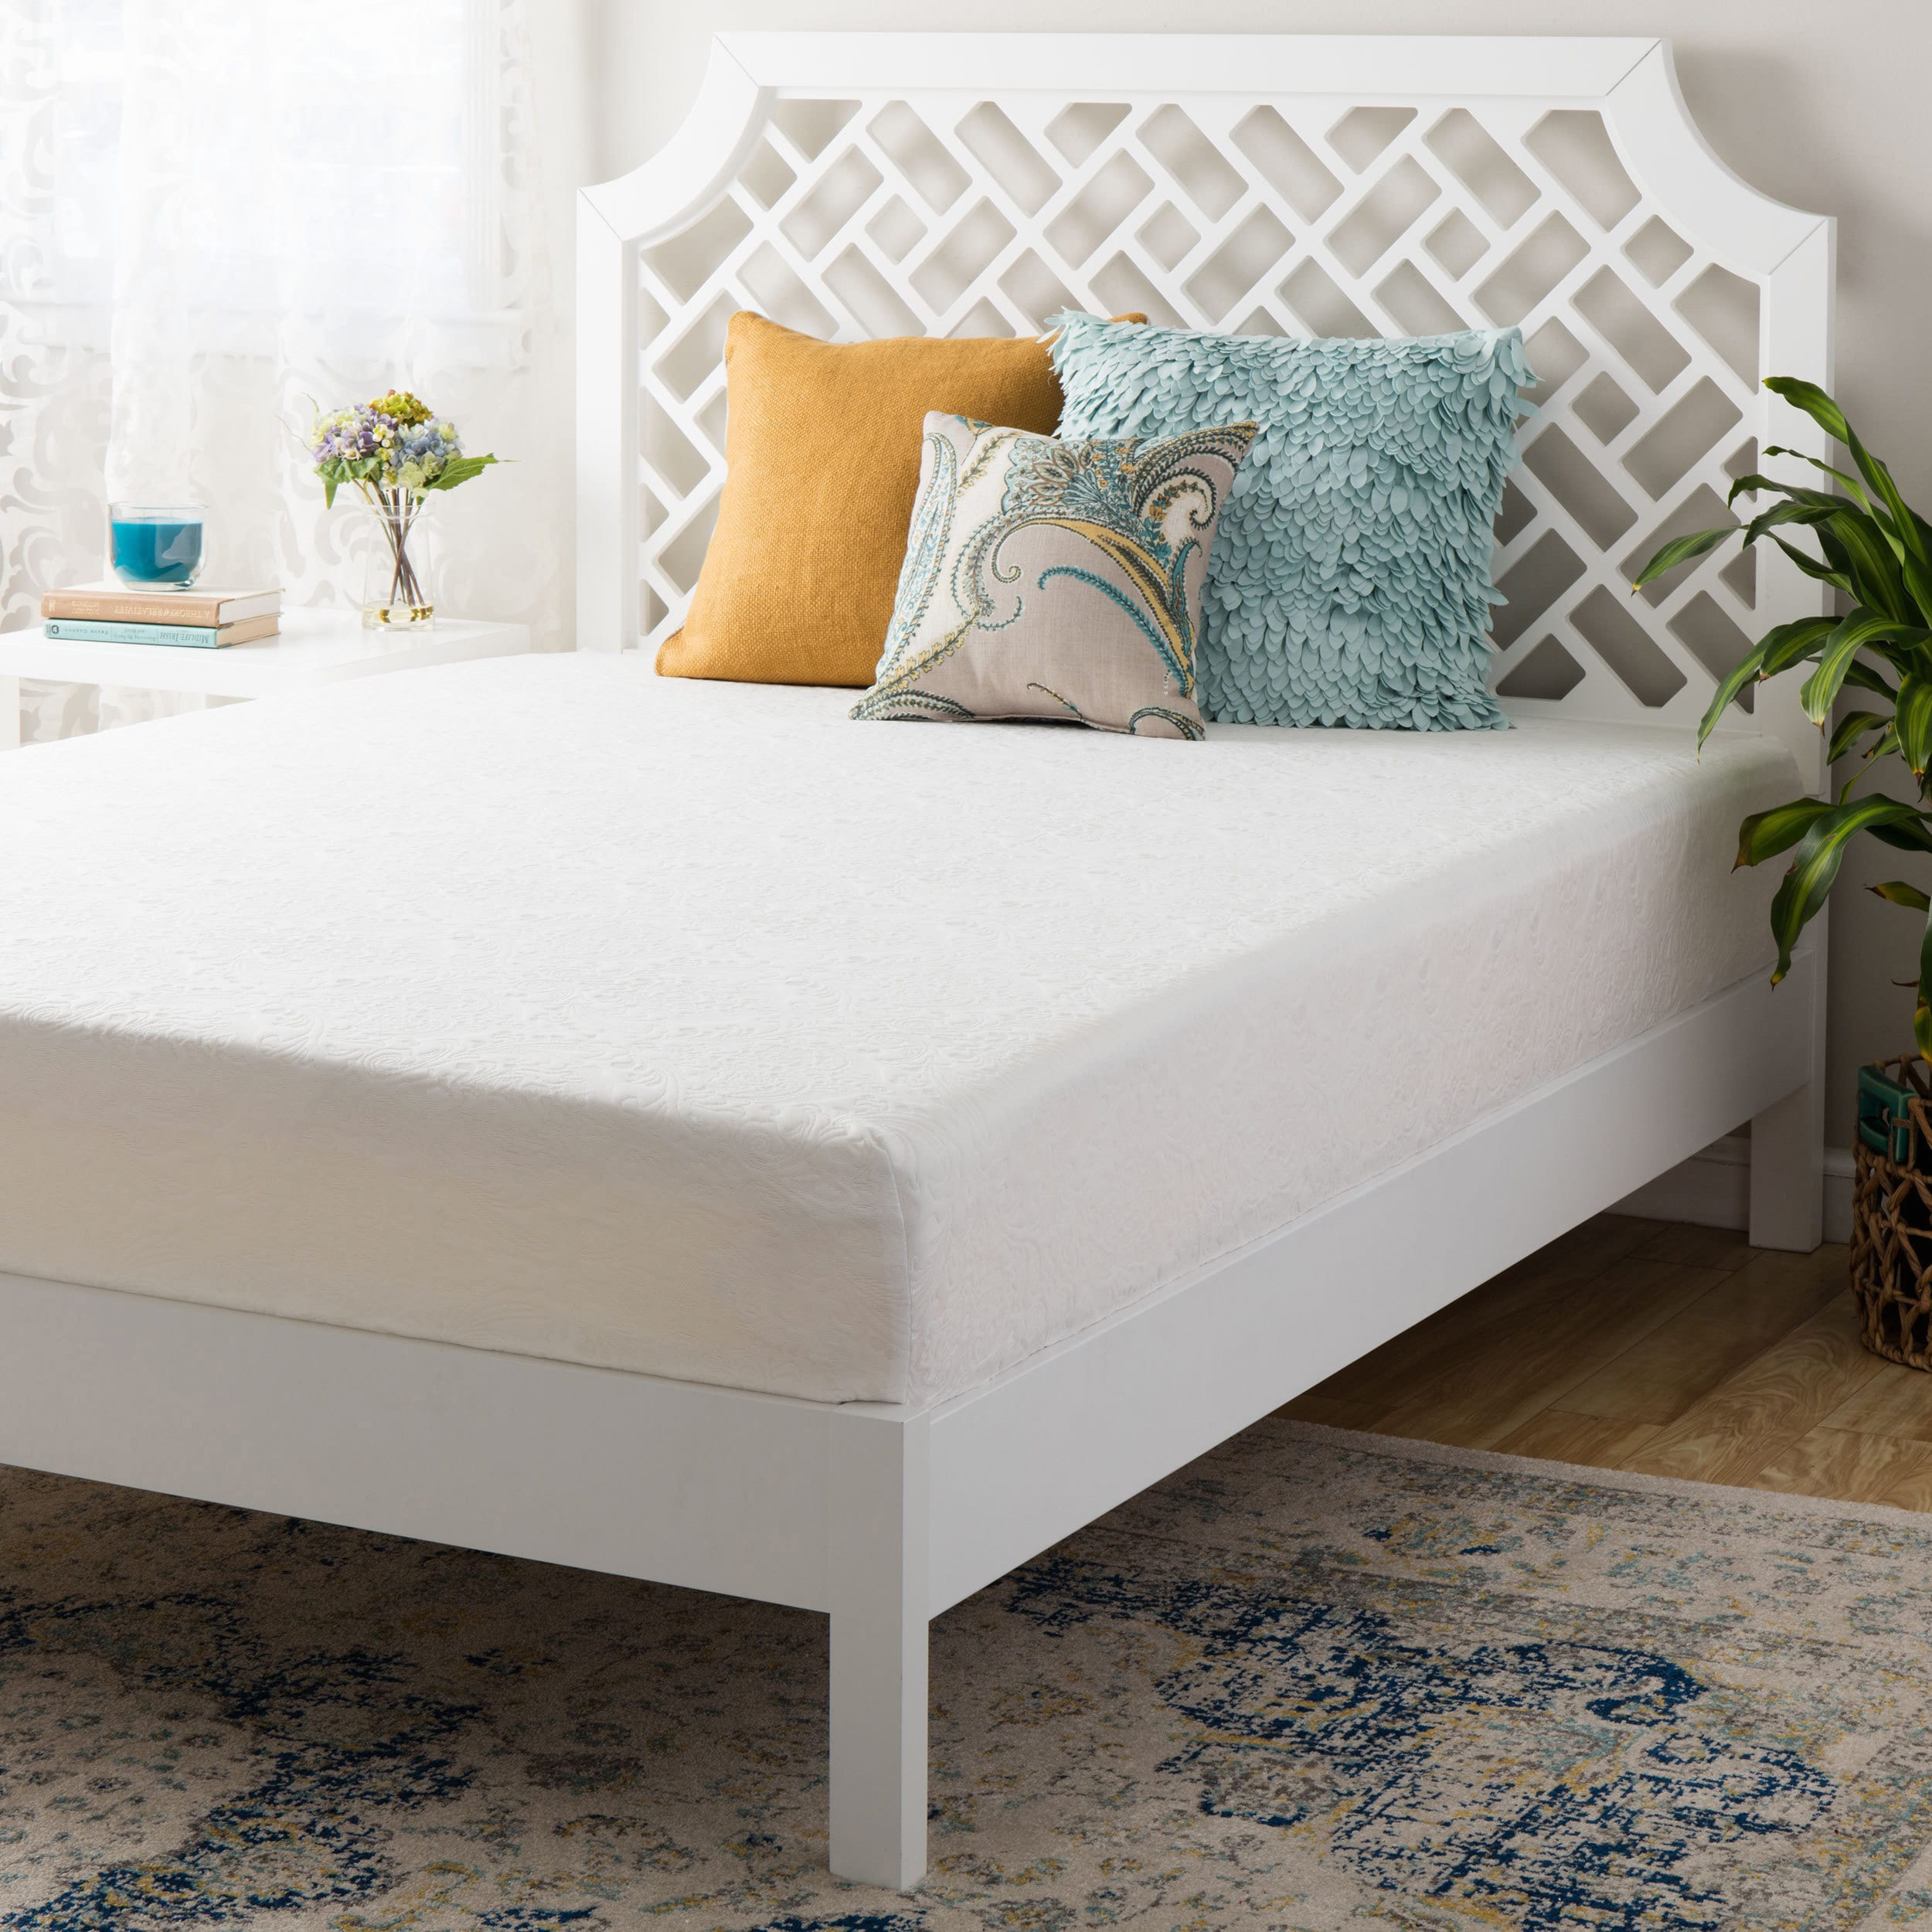 Orthosleep Product Double-Layered 14-inch California King-size Firm Memory Foam Mattress